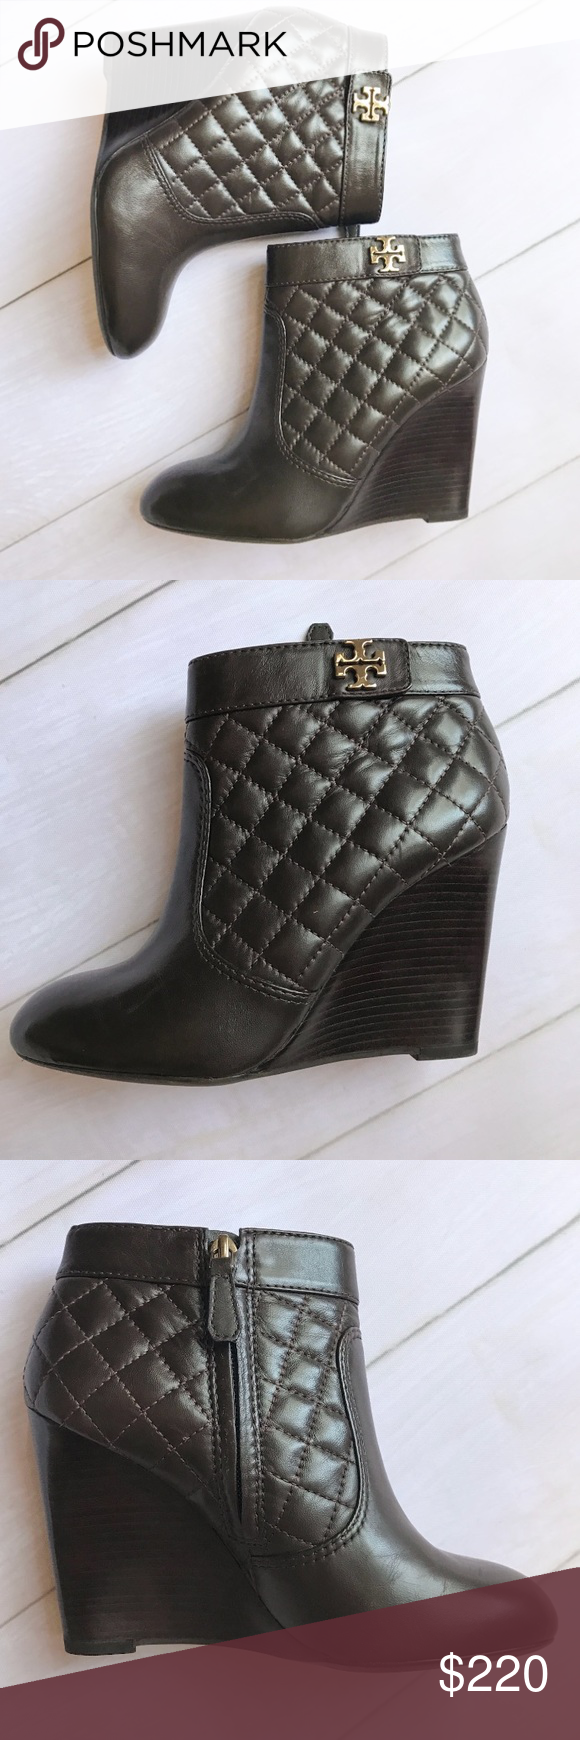 28958fc6080 Tory Burch Brown Quilted Leila Booties Like new Leila booties by Tory Burch!  Super comfy